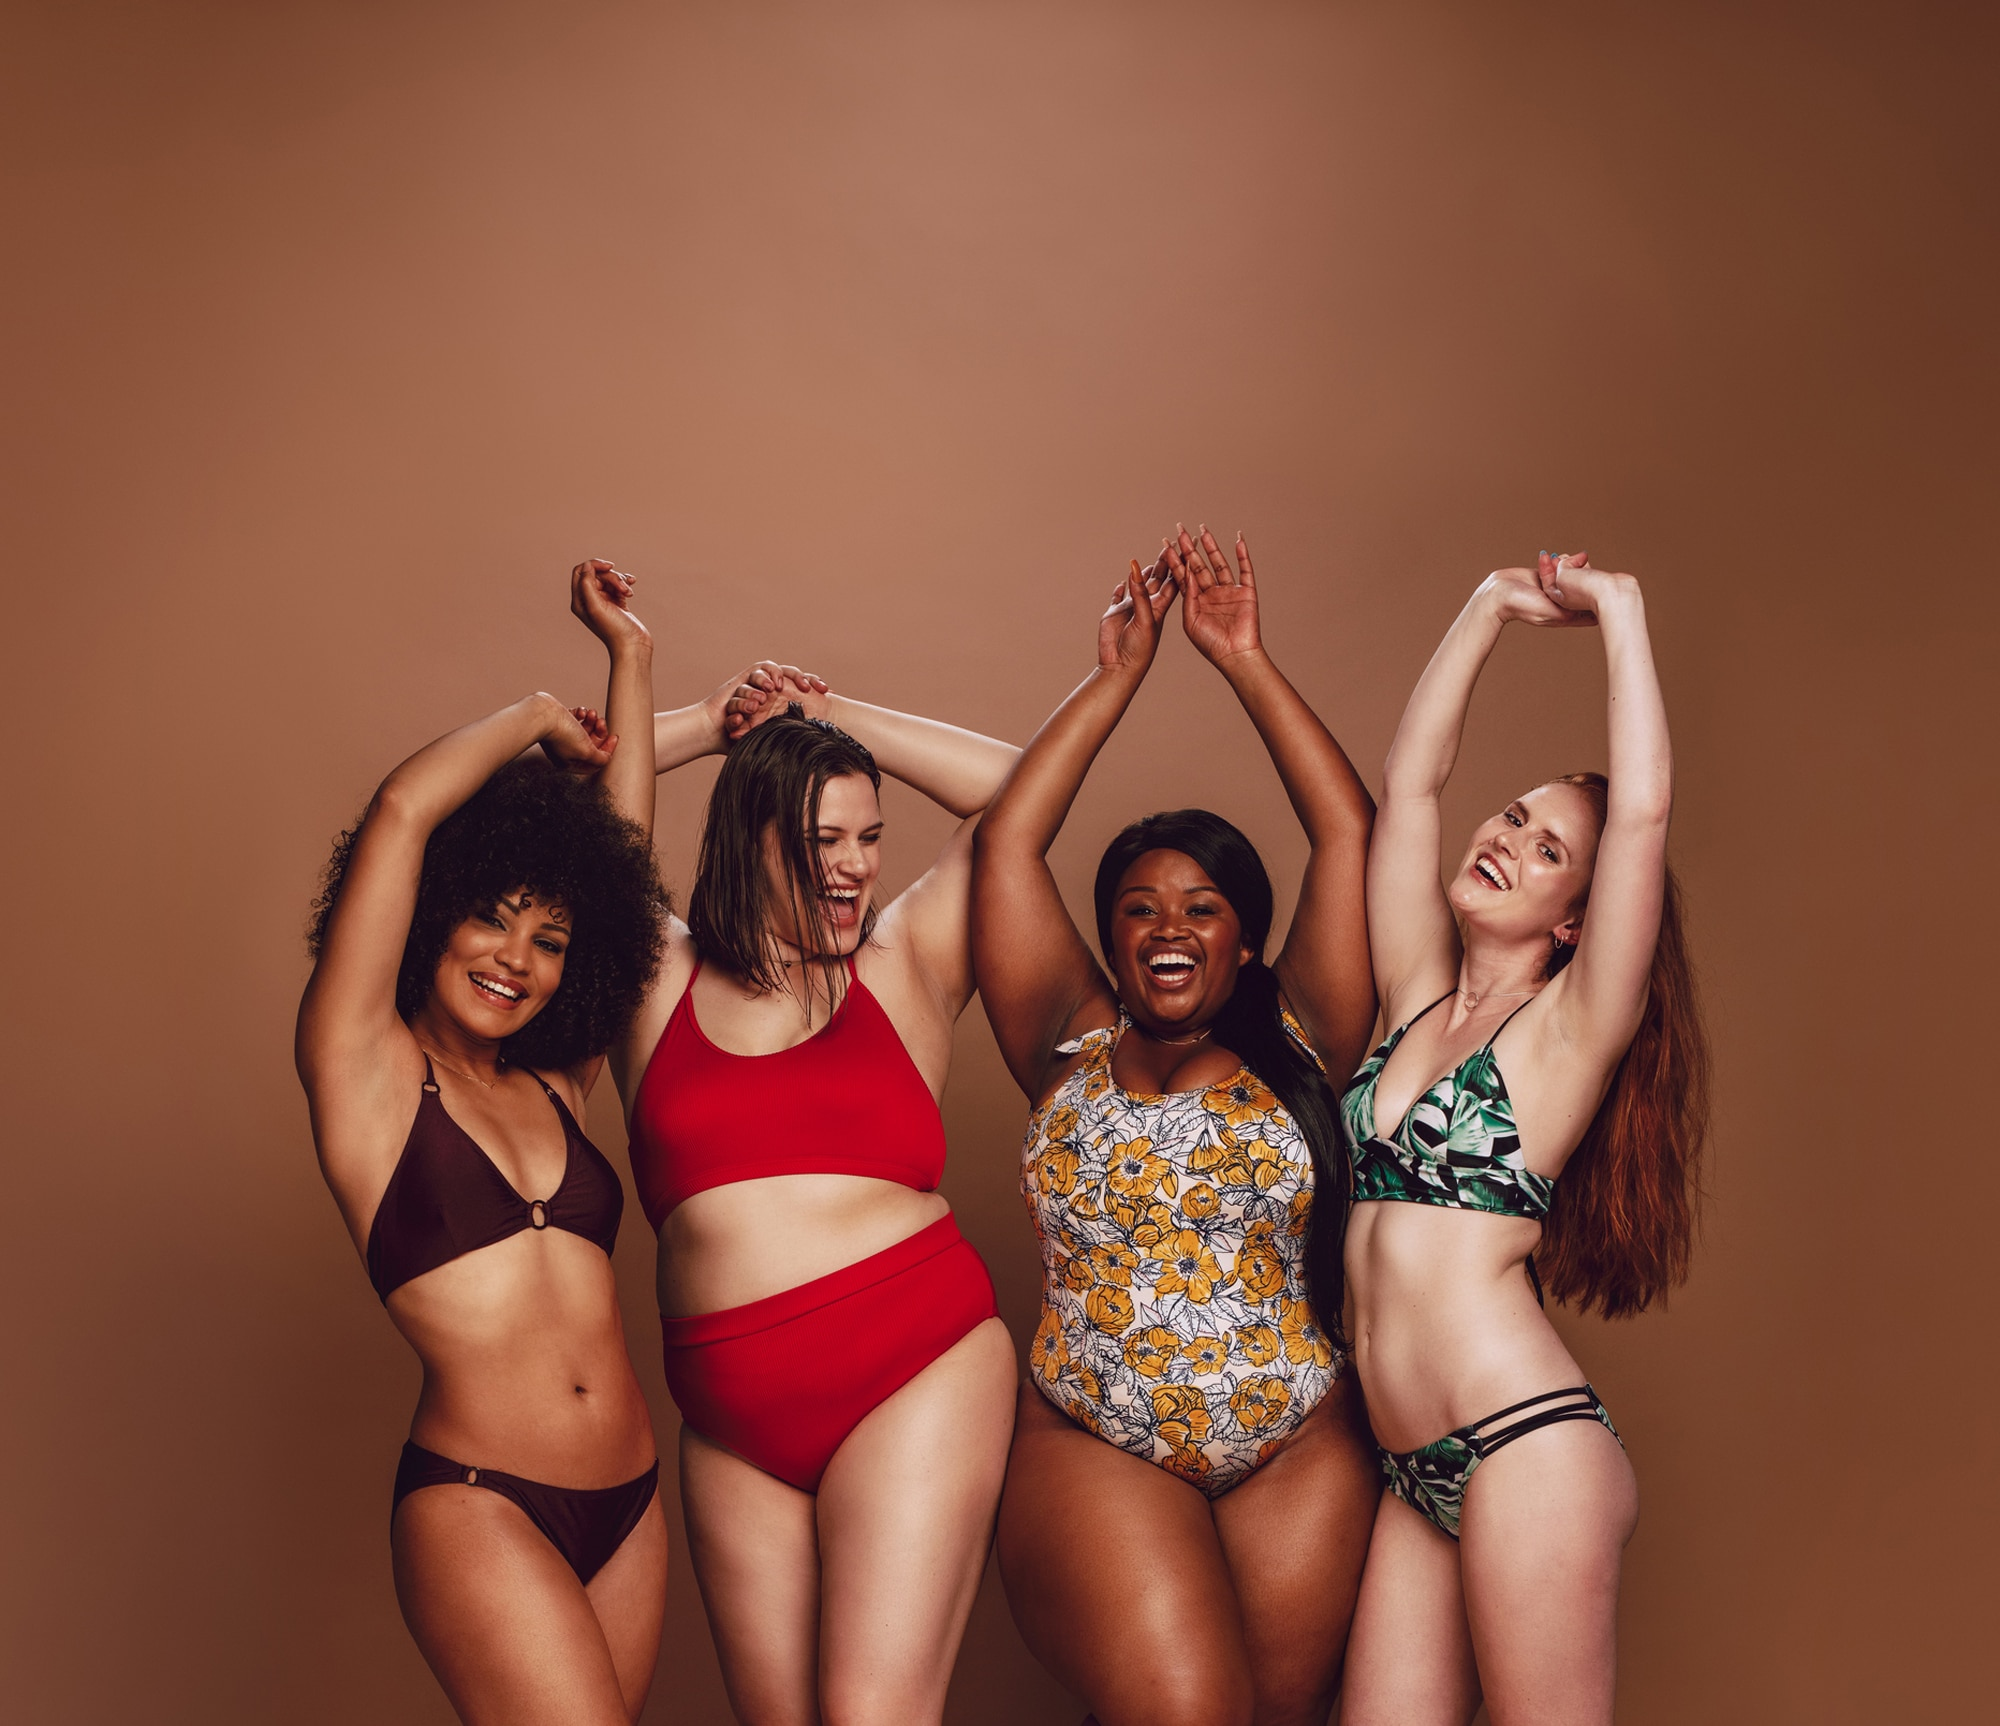 how can i Boost my Body Confidence